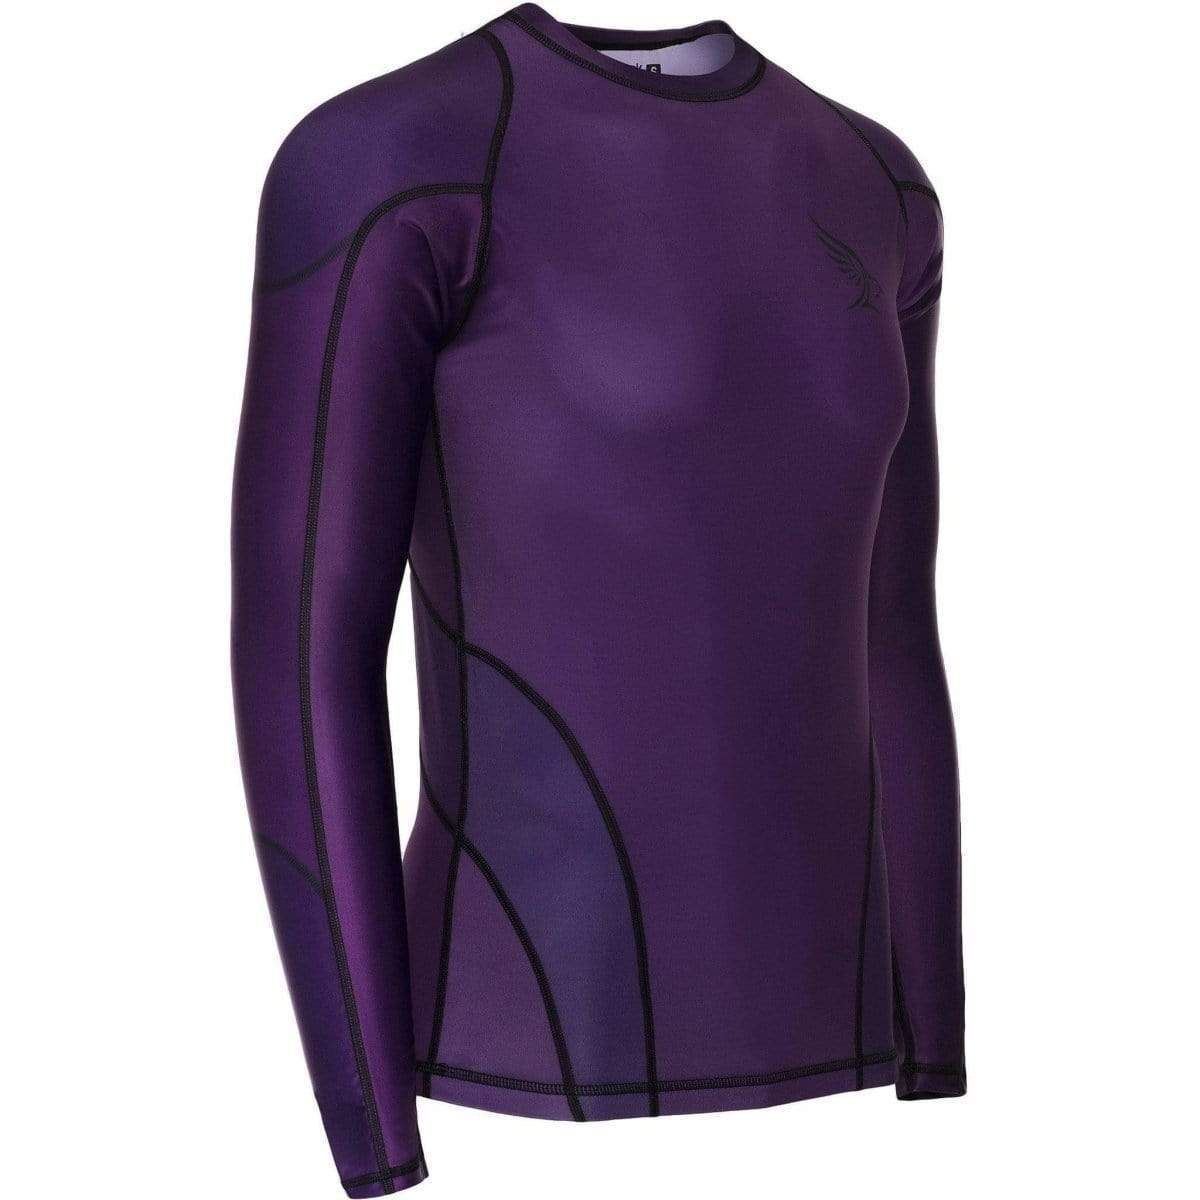 Habrok Rash Guard S / PURPLE Pugnator | Rash Guard | Men Pugnator | Rash Guard | Habrok